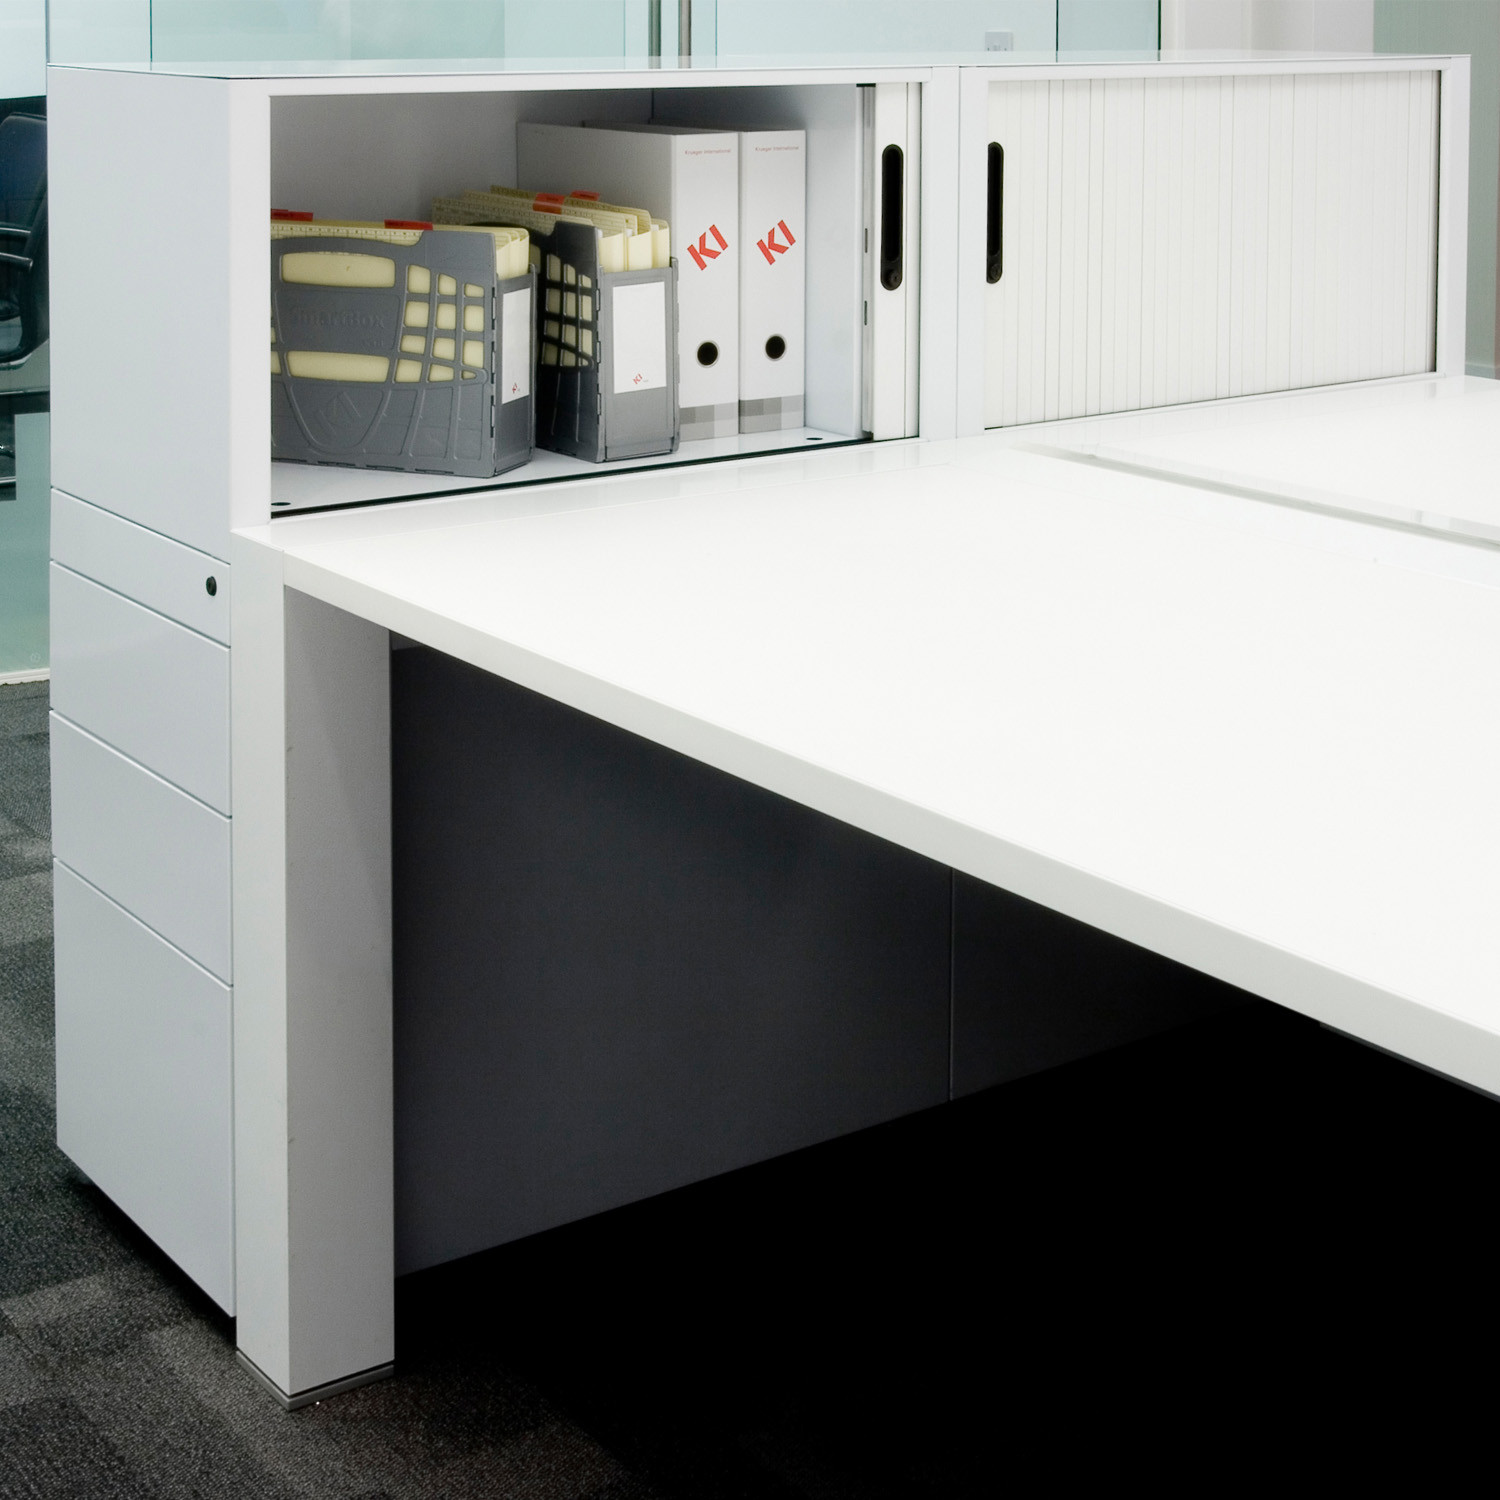 400 Series Tambour Storage by KI